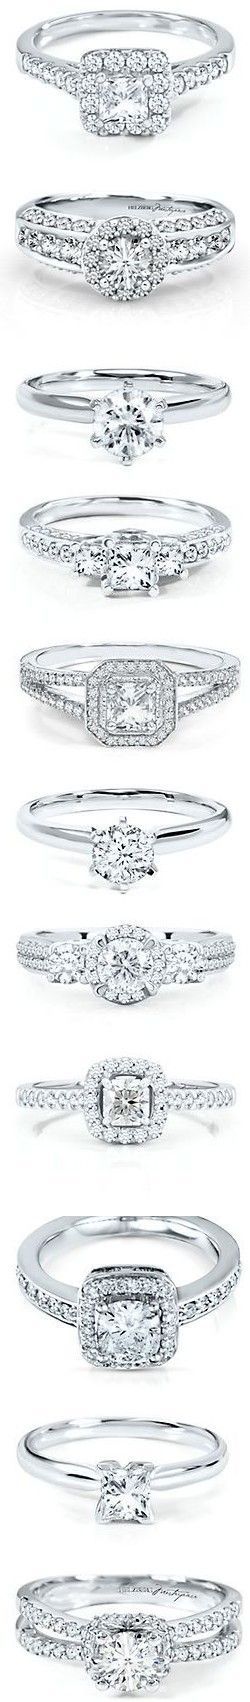 """""""rings"""" by tabithasue on Polyvore"""